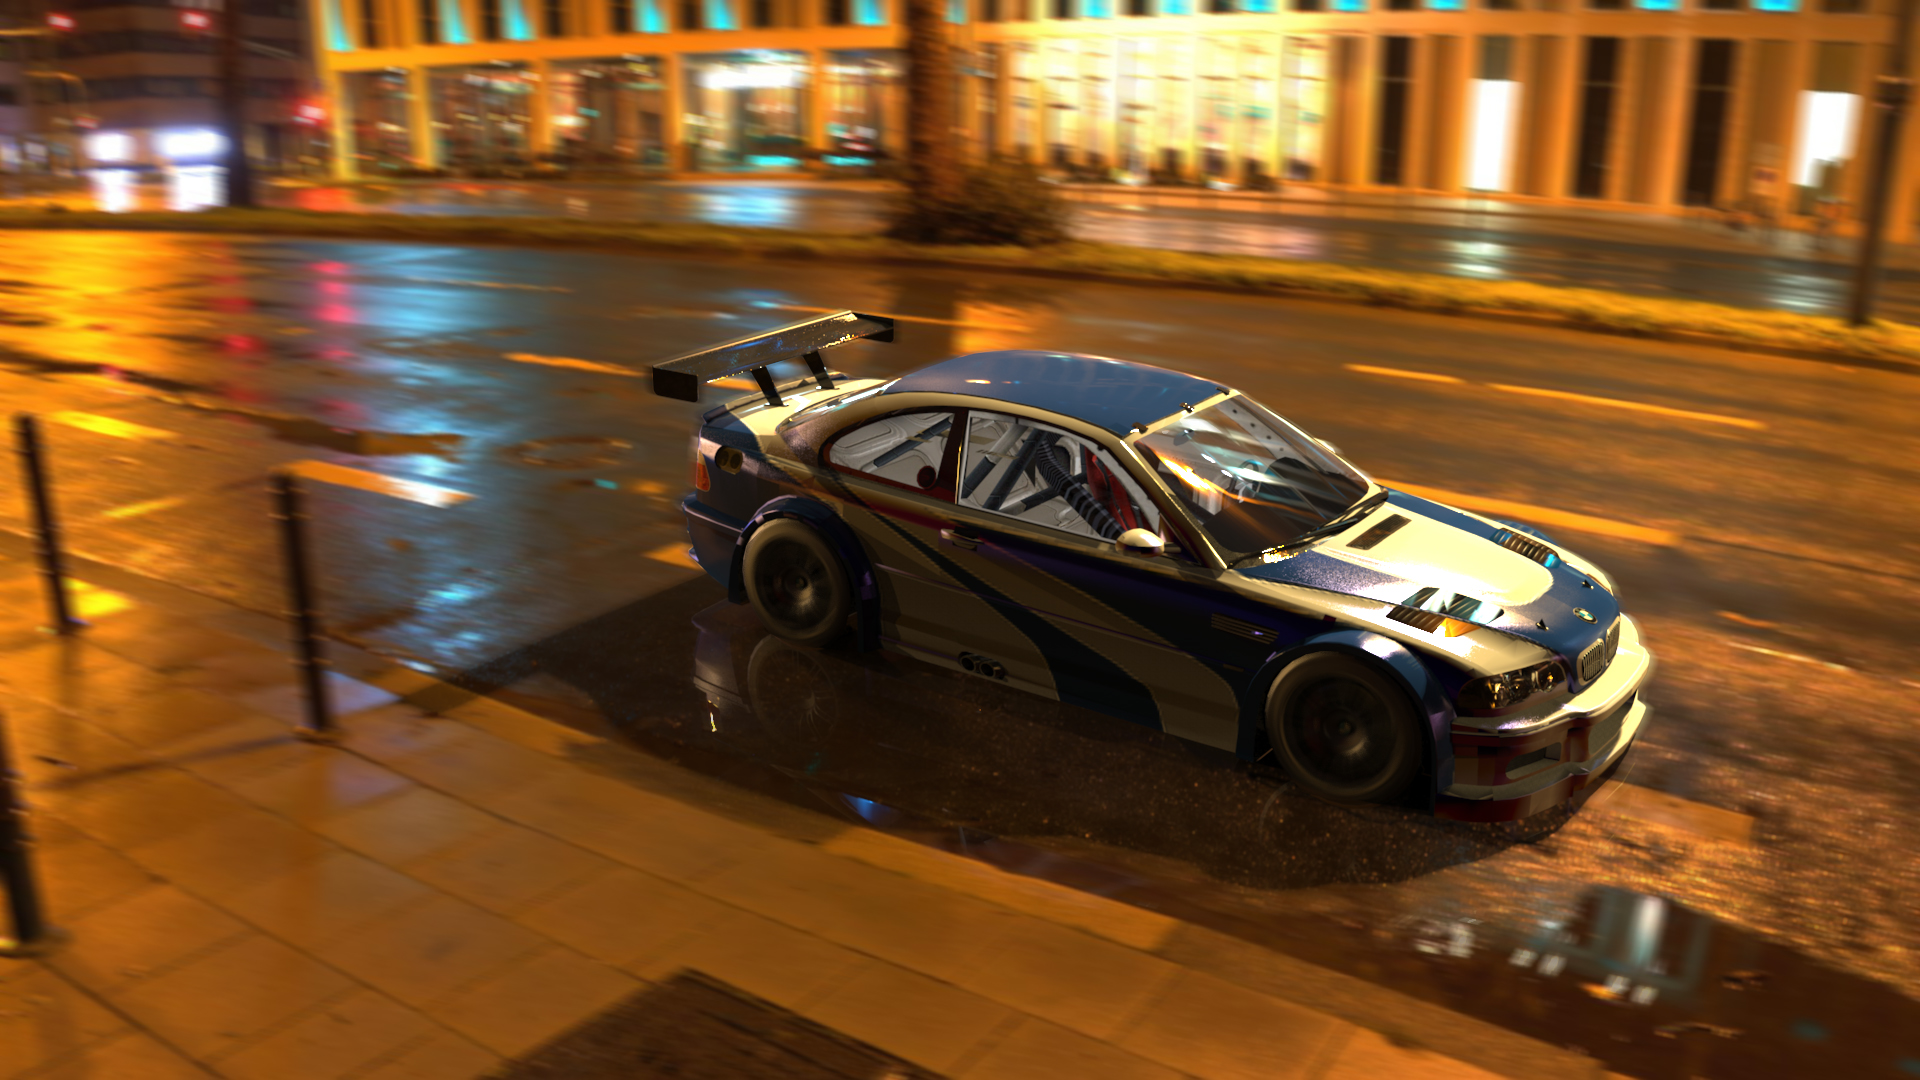 Bmw M3 Gtr Need For Speed Most Wanted Game Art Car Bmw E46 Bmw 3 Series High Angle Wallpaper Resolution 1920x1080 Id 545213 Wallha Com